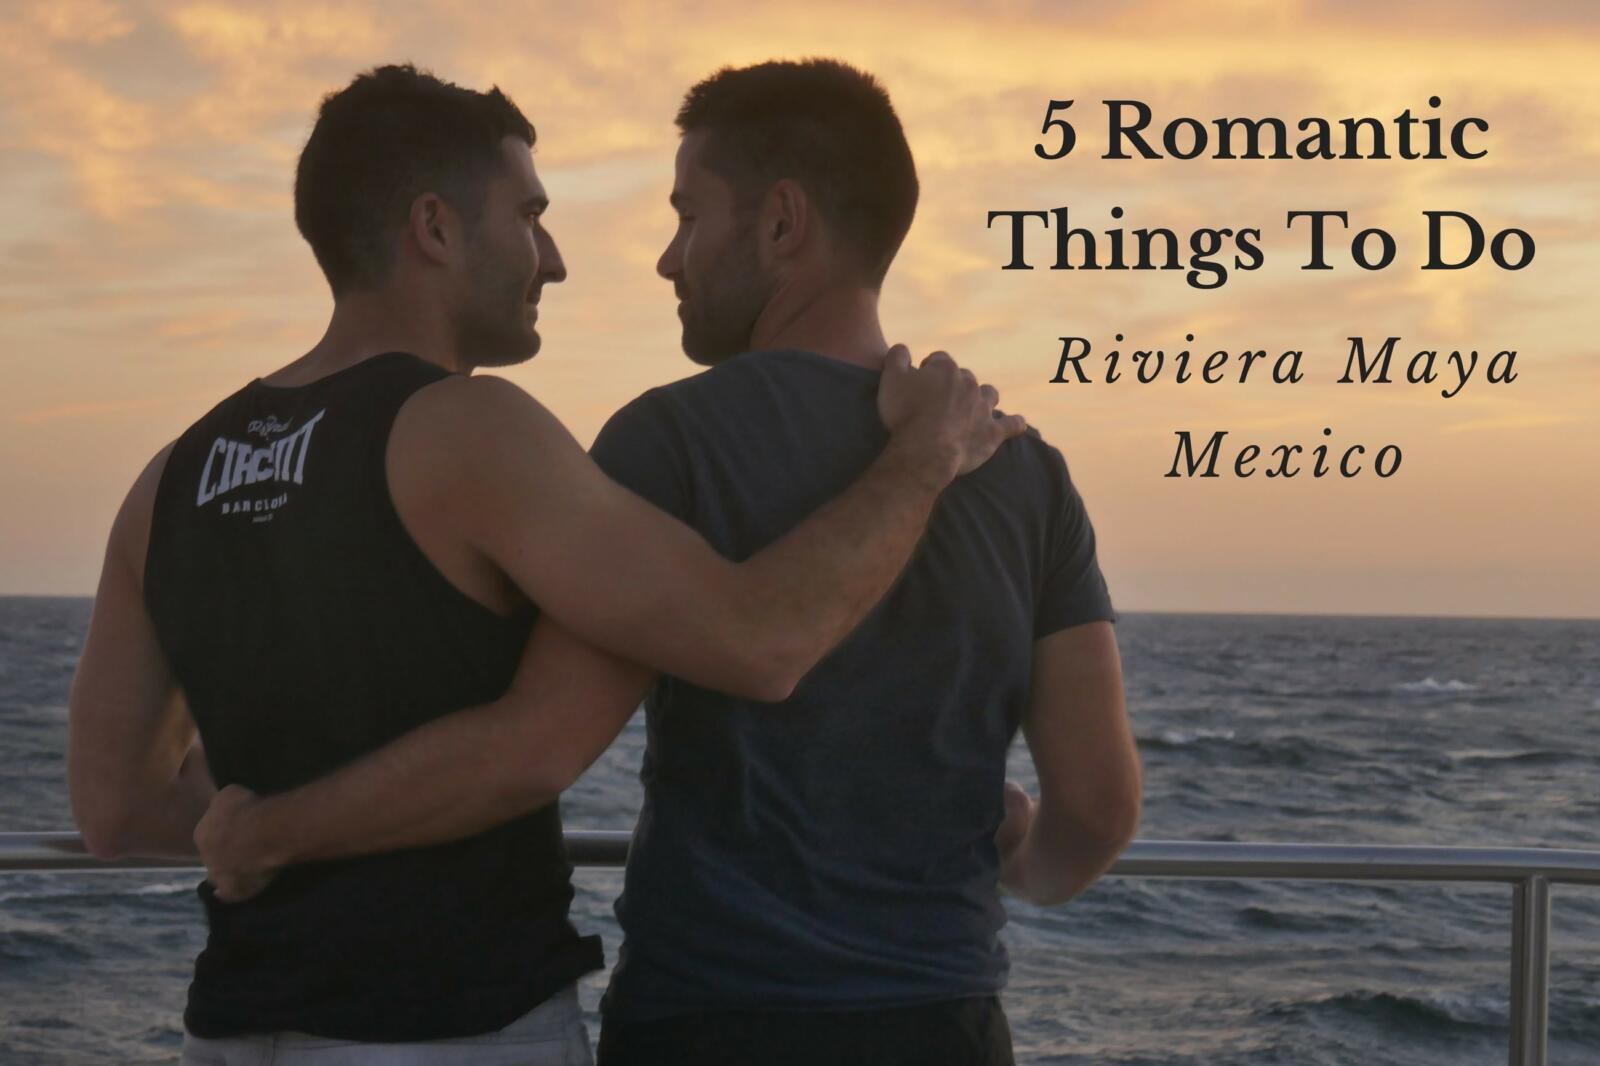 5 Romantic Things To Do in Riviera Maya